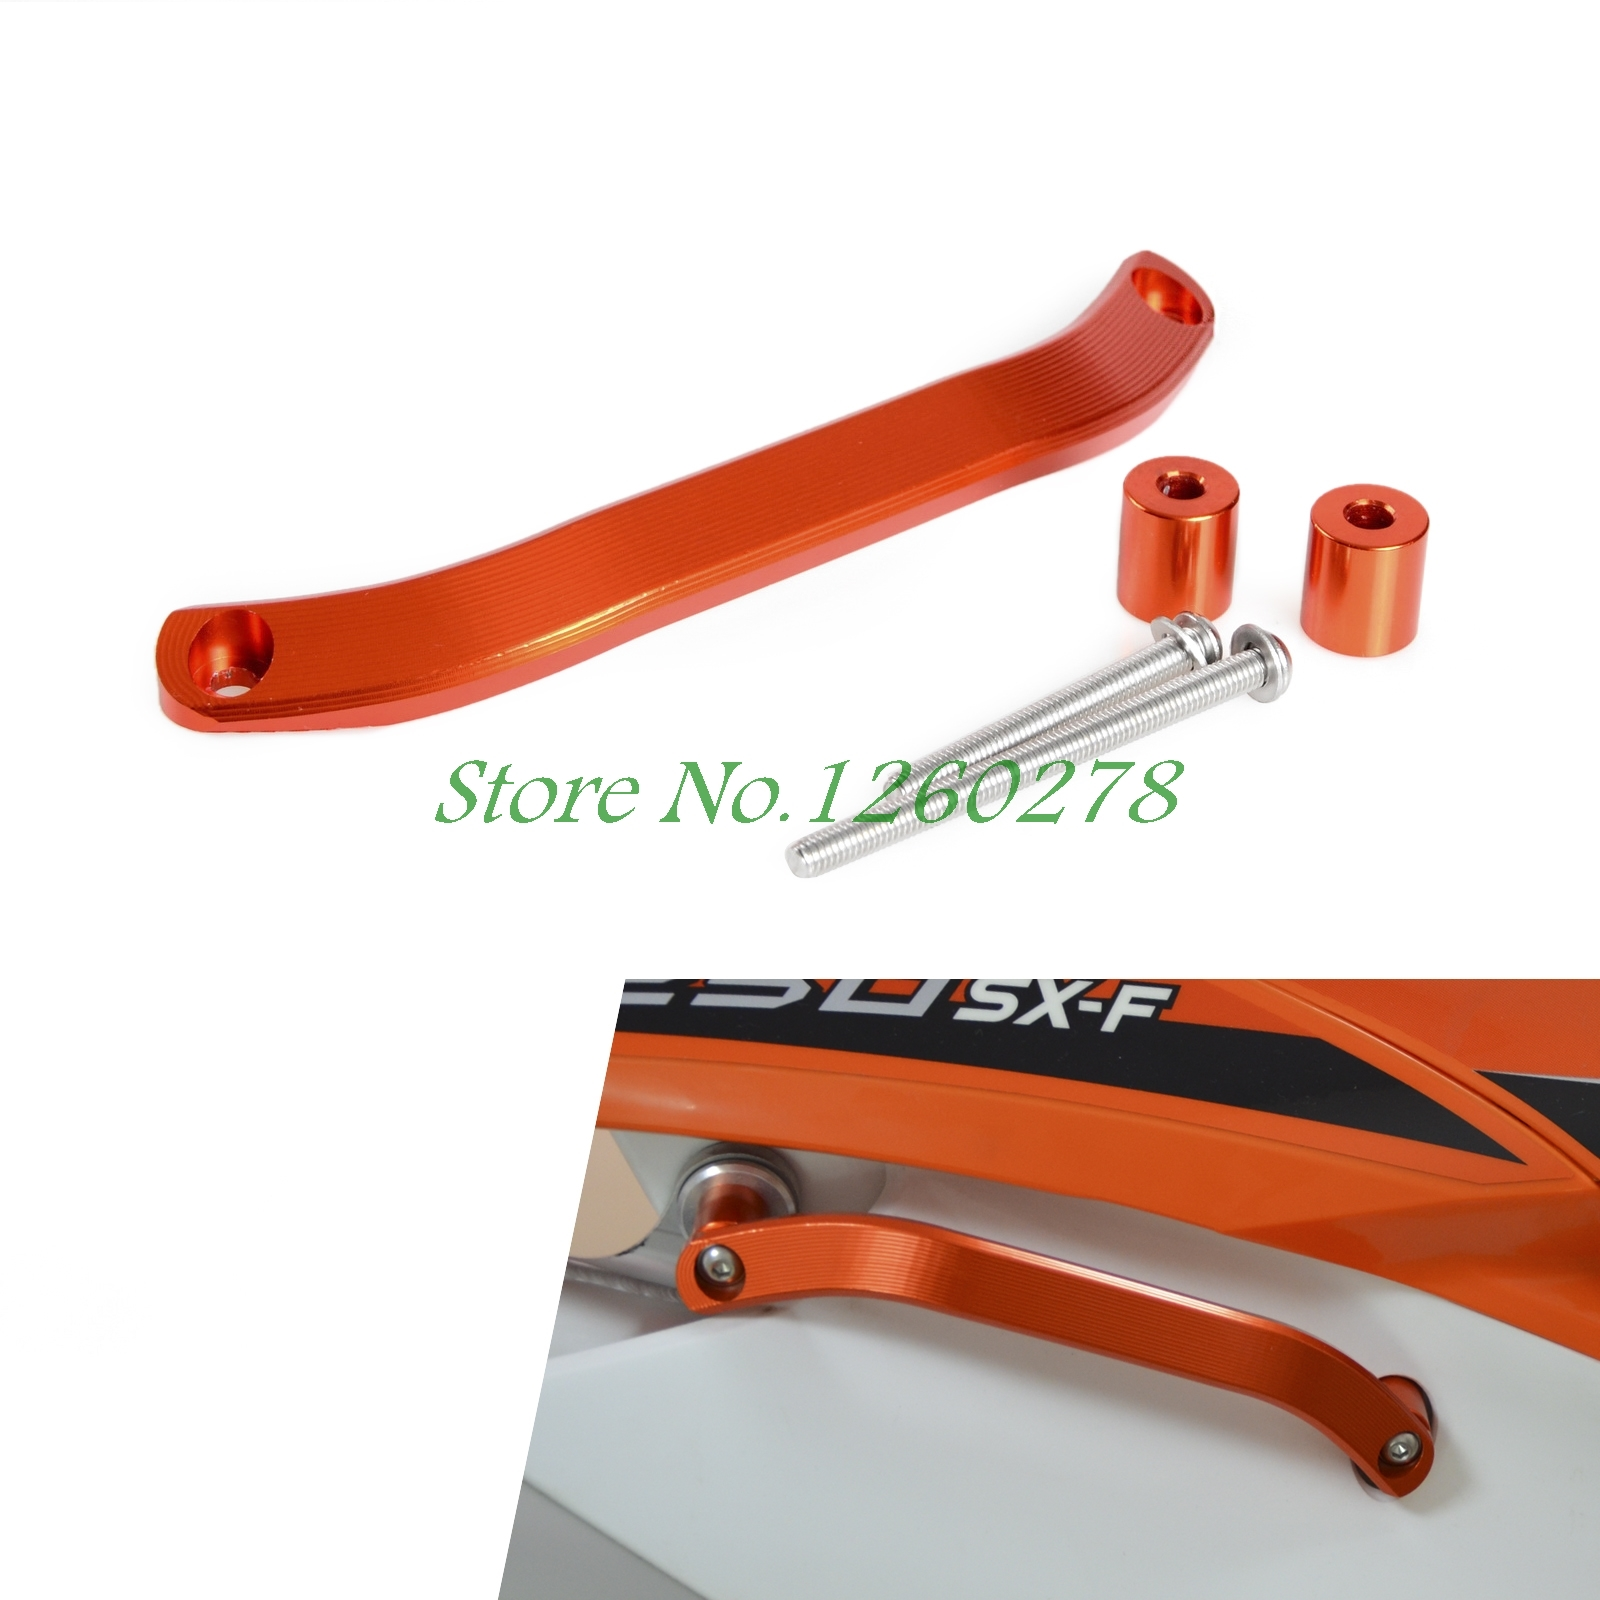 Motorcycle CNC Billet Grab Handle For KTM 125 150 250 300 350 450 500 SX EXC XC-W SXF XC-W XC Moto Dirt Bike  0322 star new team graphics with matching backgrounds fit for ktm sx sxf 125 150 200 250 350 450 500 2011 2012